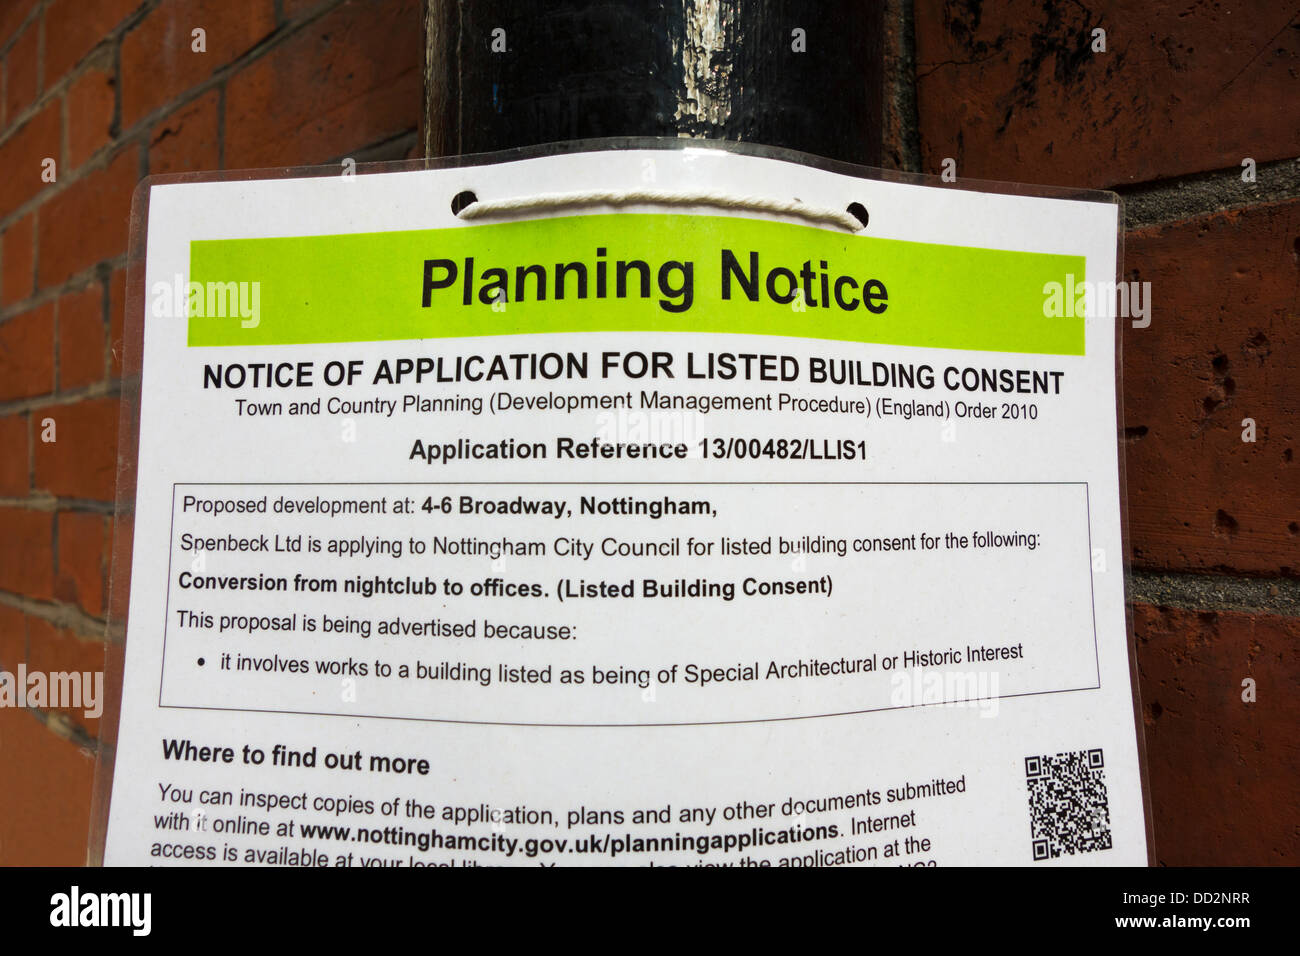 A planning notice of application for a listed building in the U.K. - Stock Image